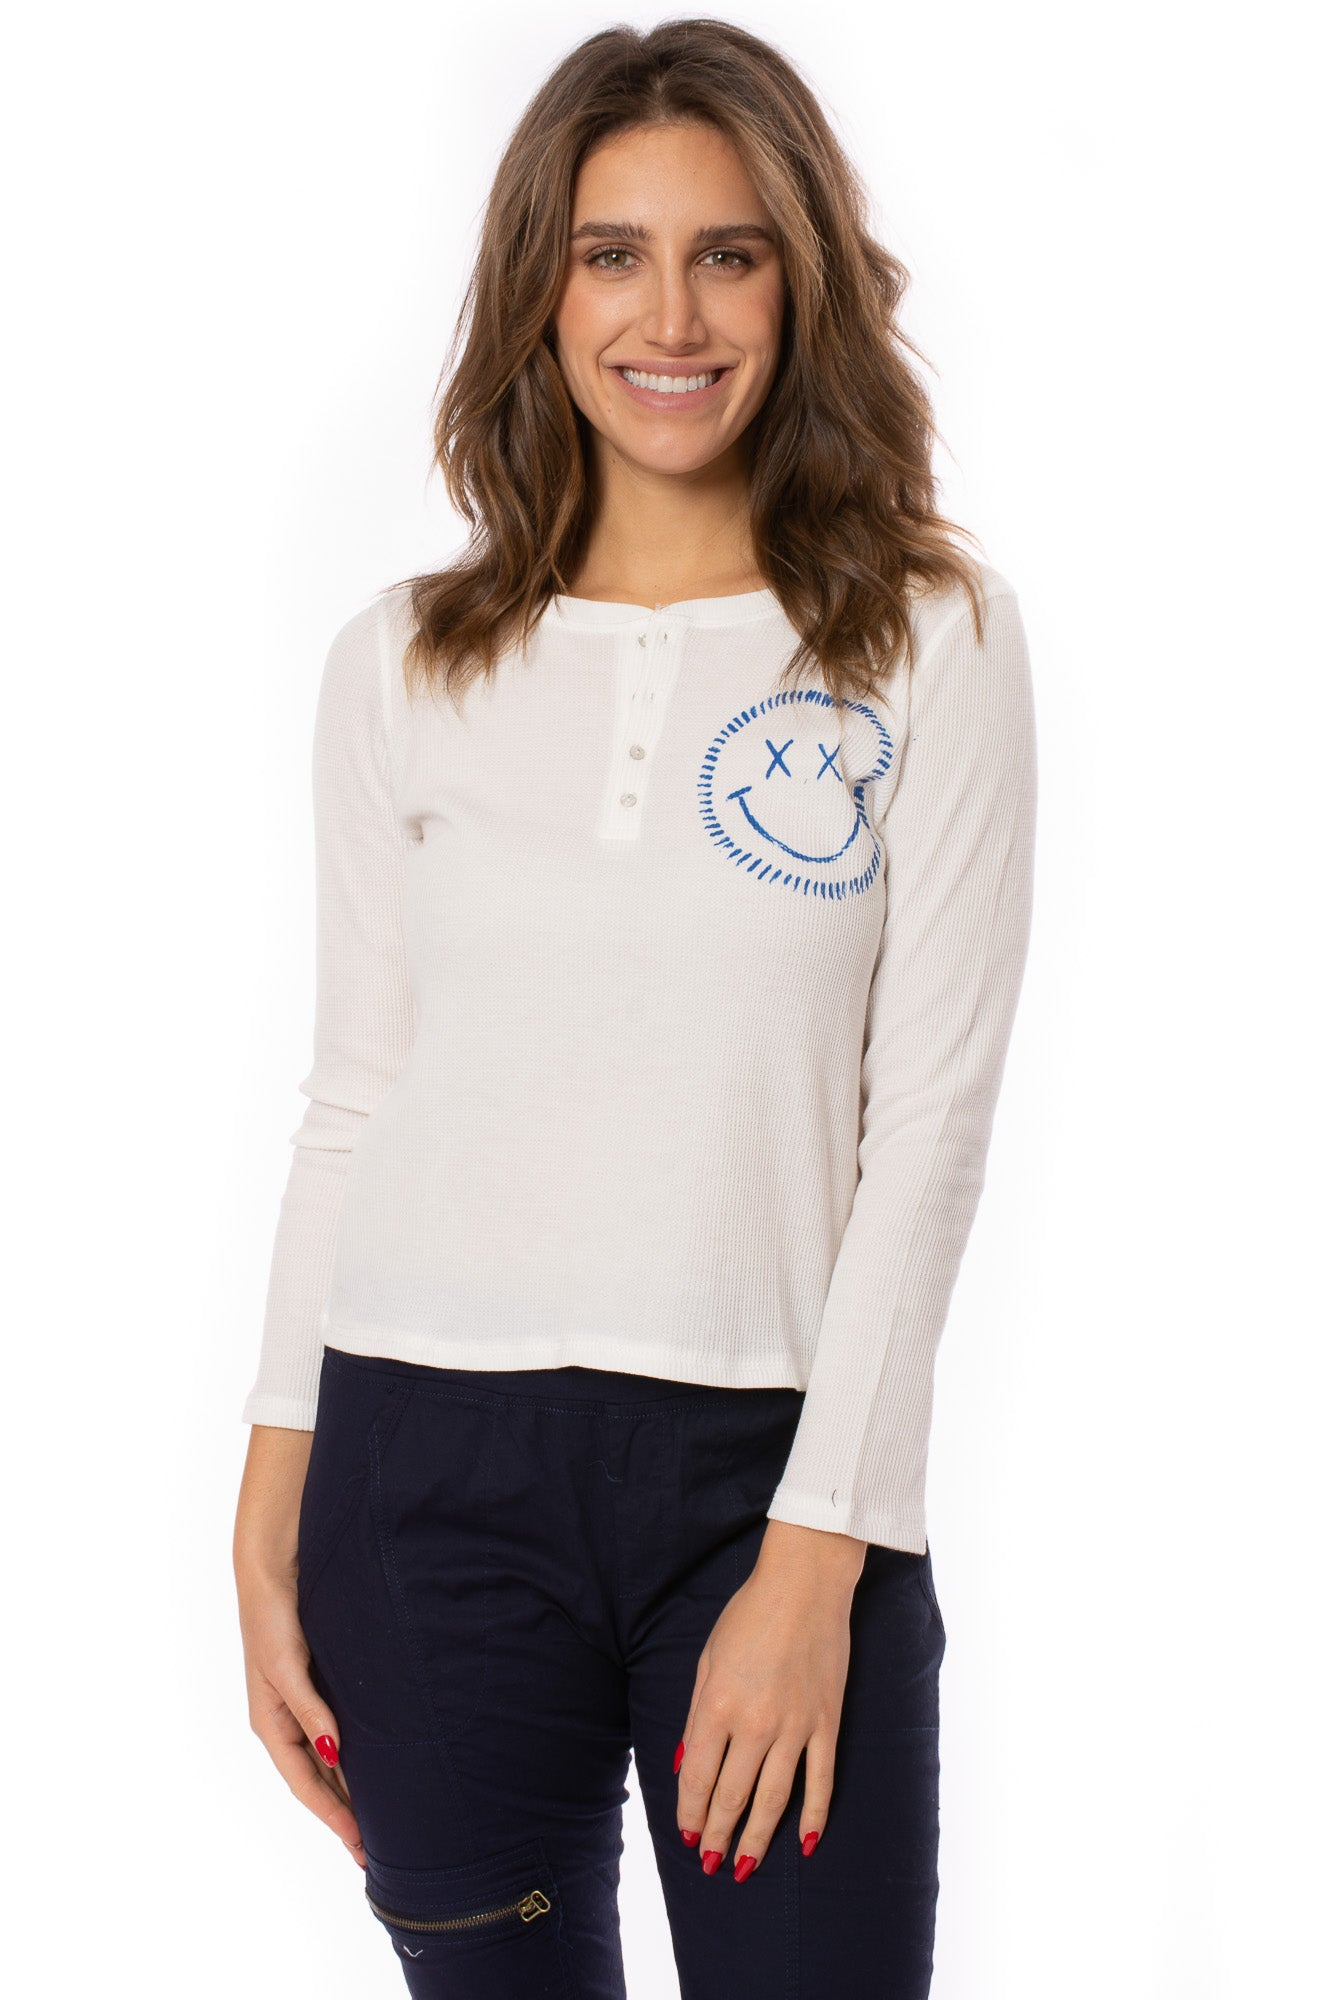 Six/Fifty - Henley w/Smiley (SF2721, White) alt view 1